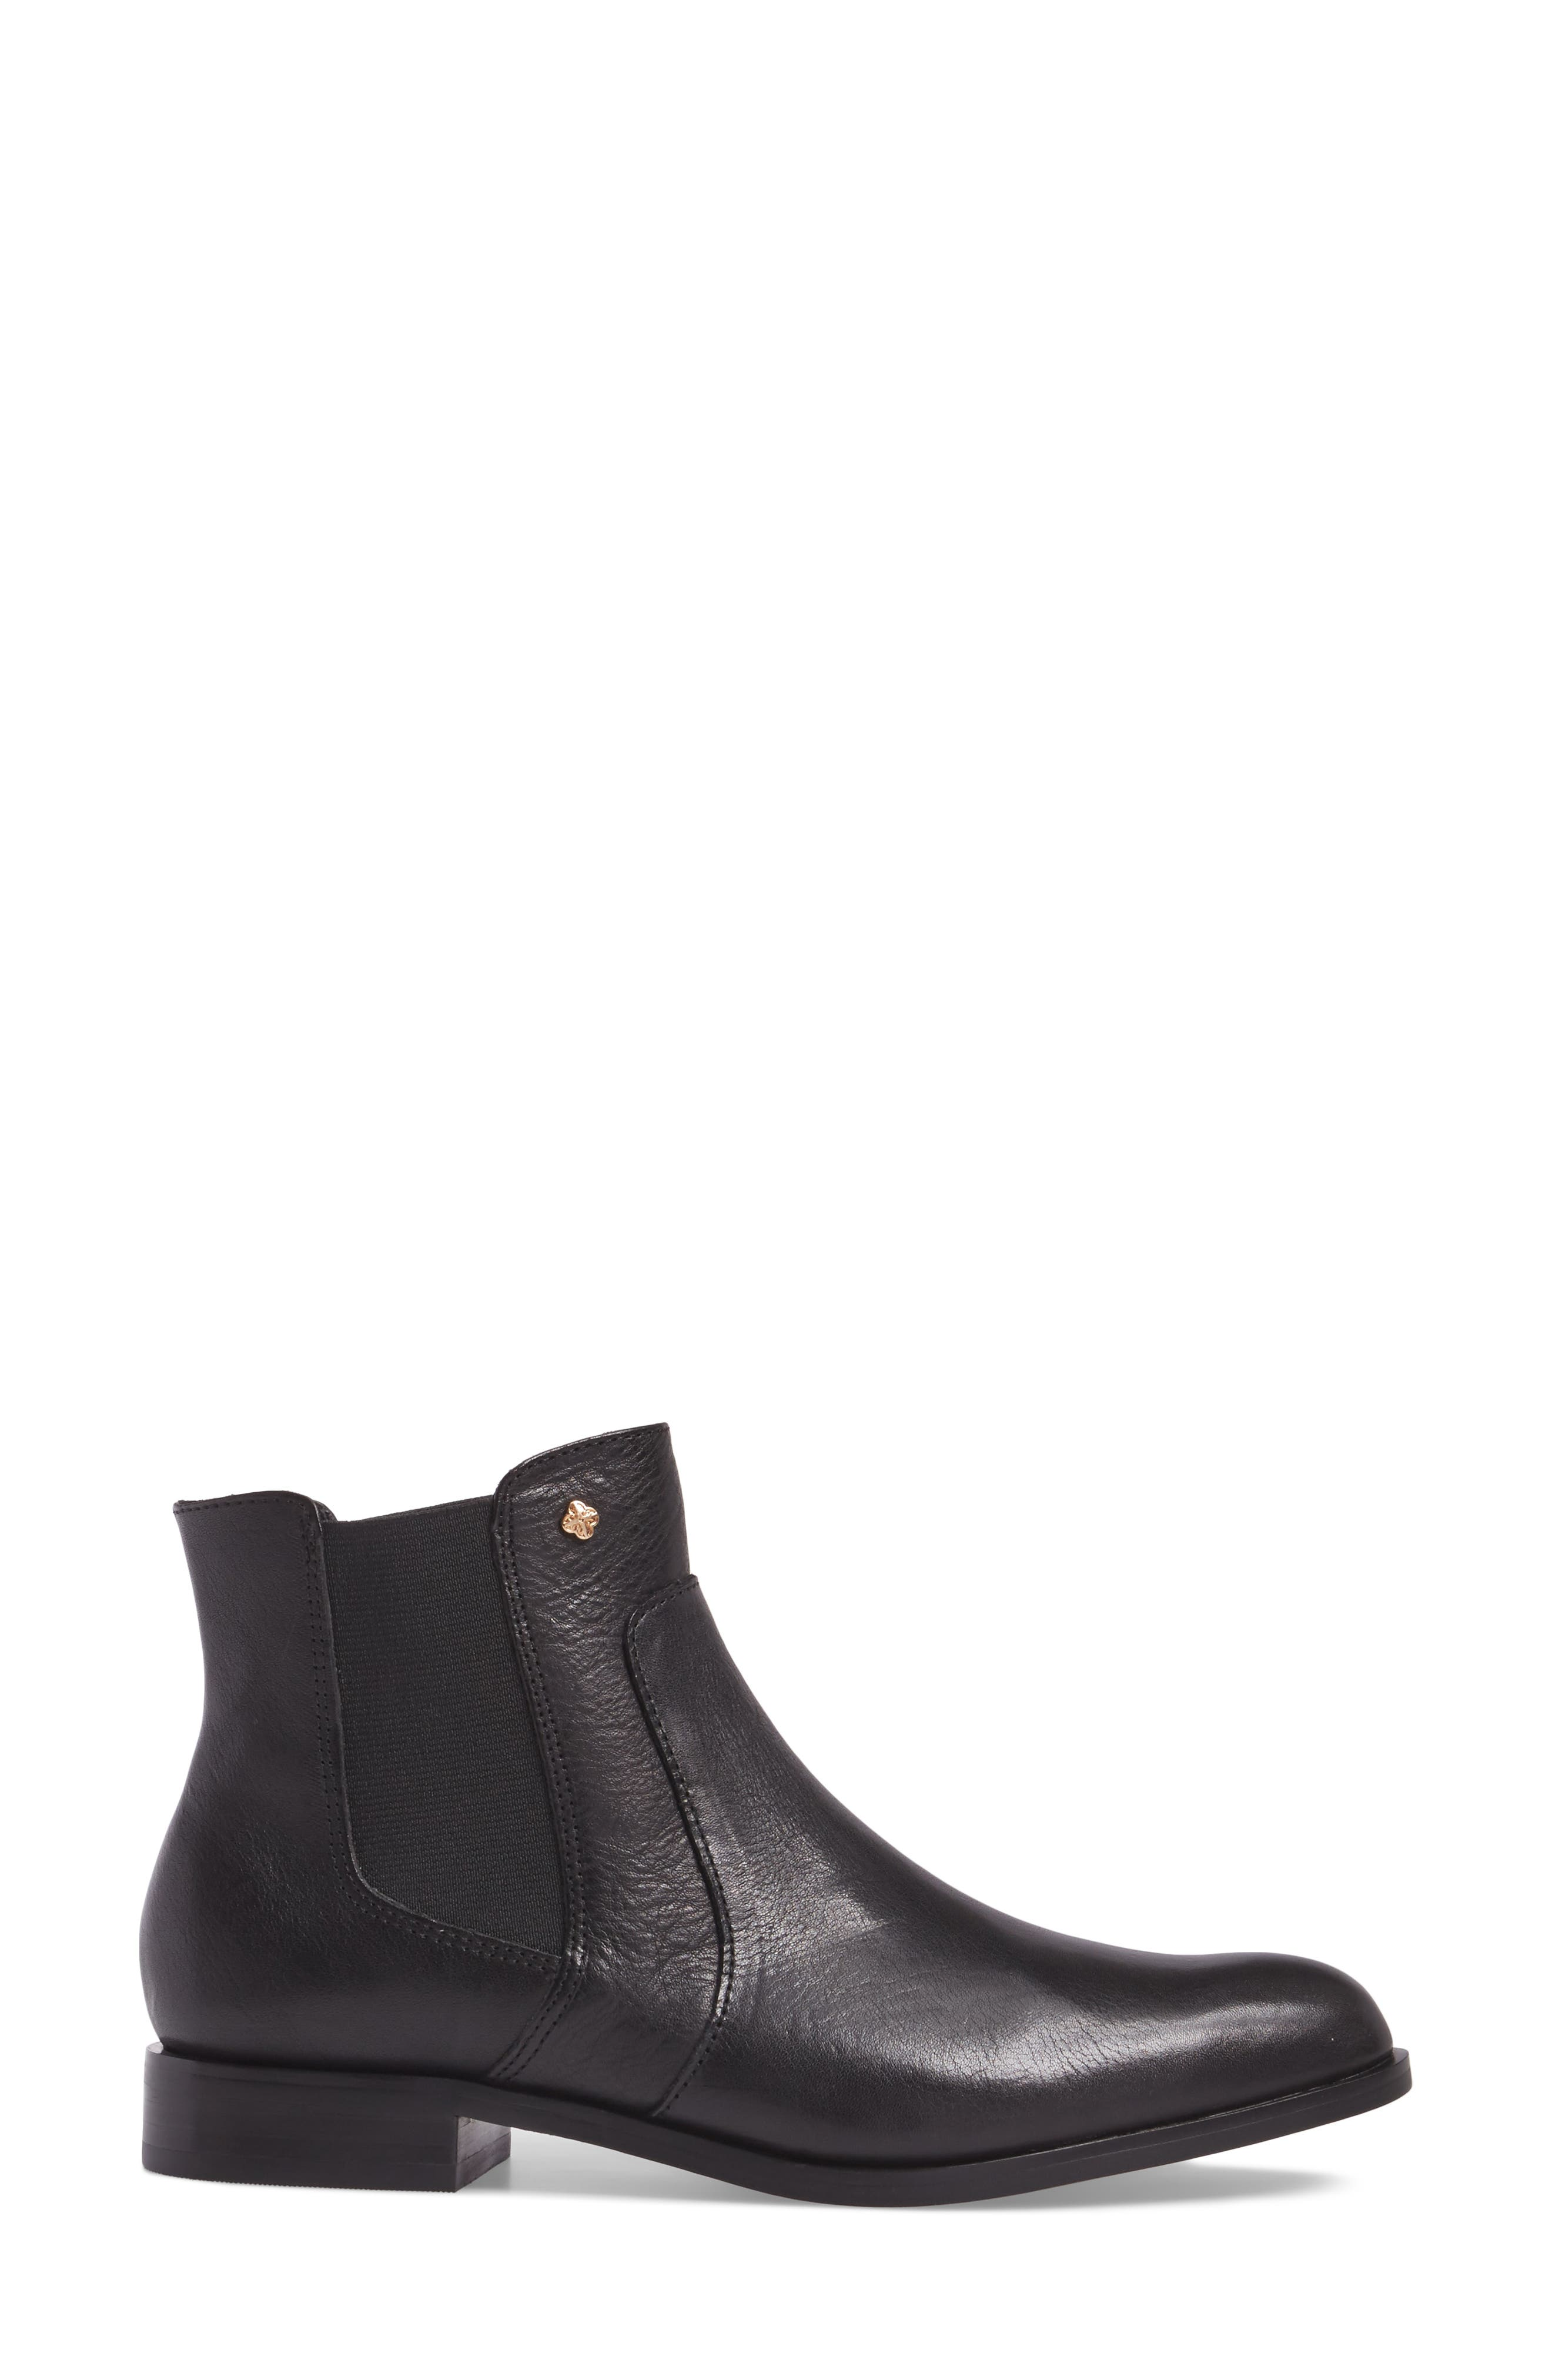 ISOLÁ, Mora Bootie, Alternate thumbnail 3, color, BLACK LEATHER